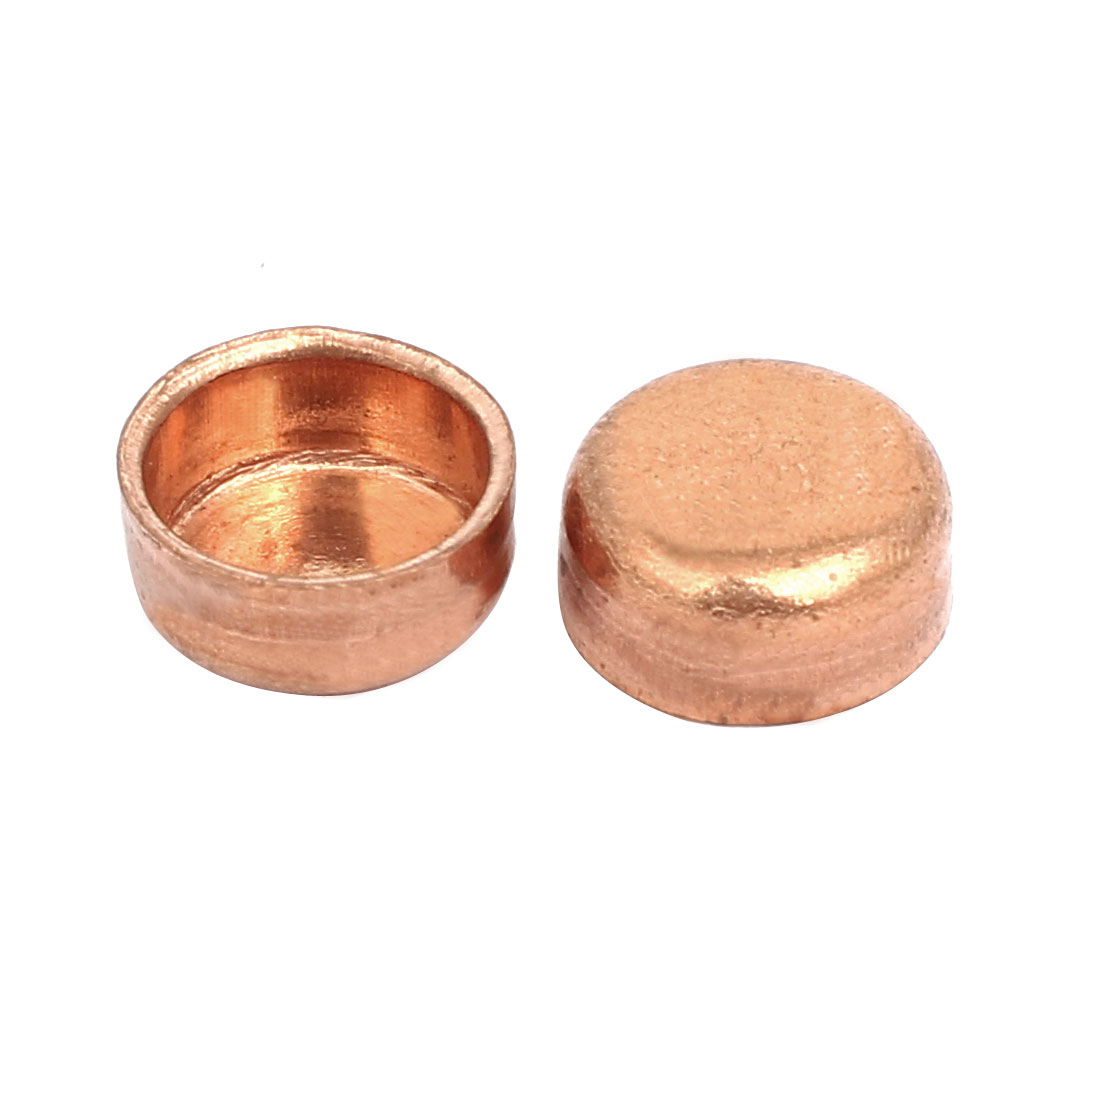 9.52mmx0.8mm Copper Pipe Tube End Cap Cover Plumbing Fitting 2pcs